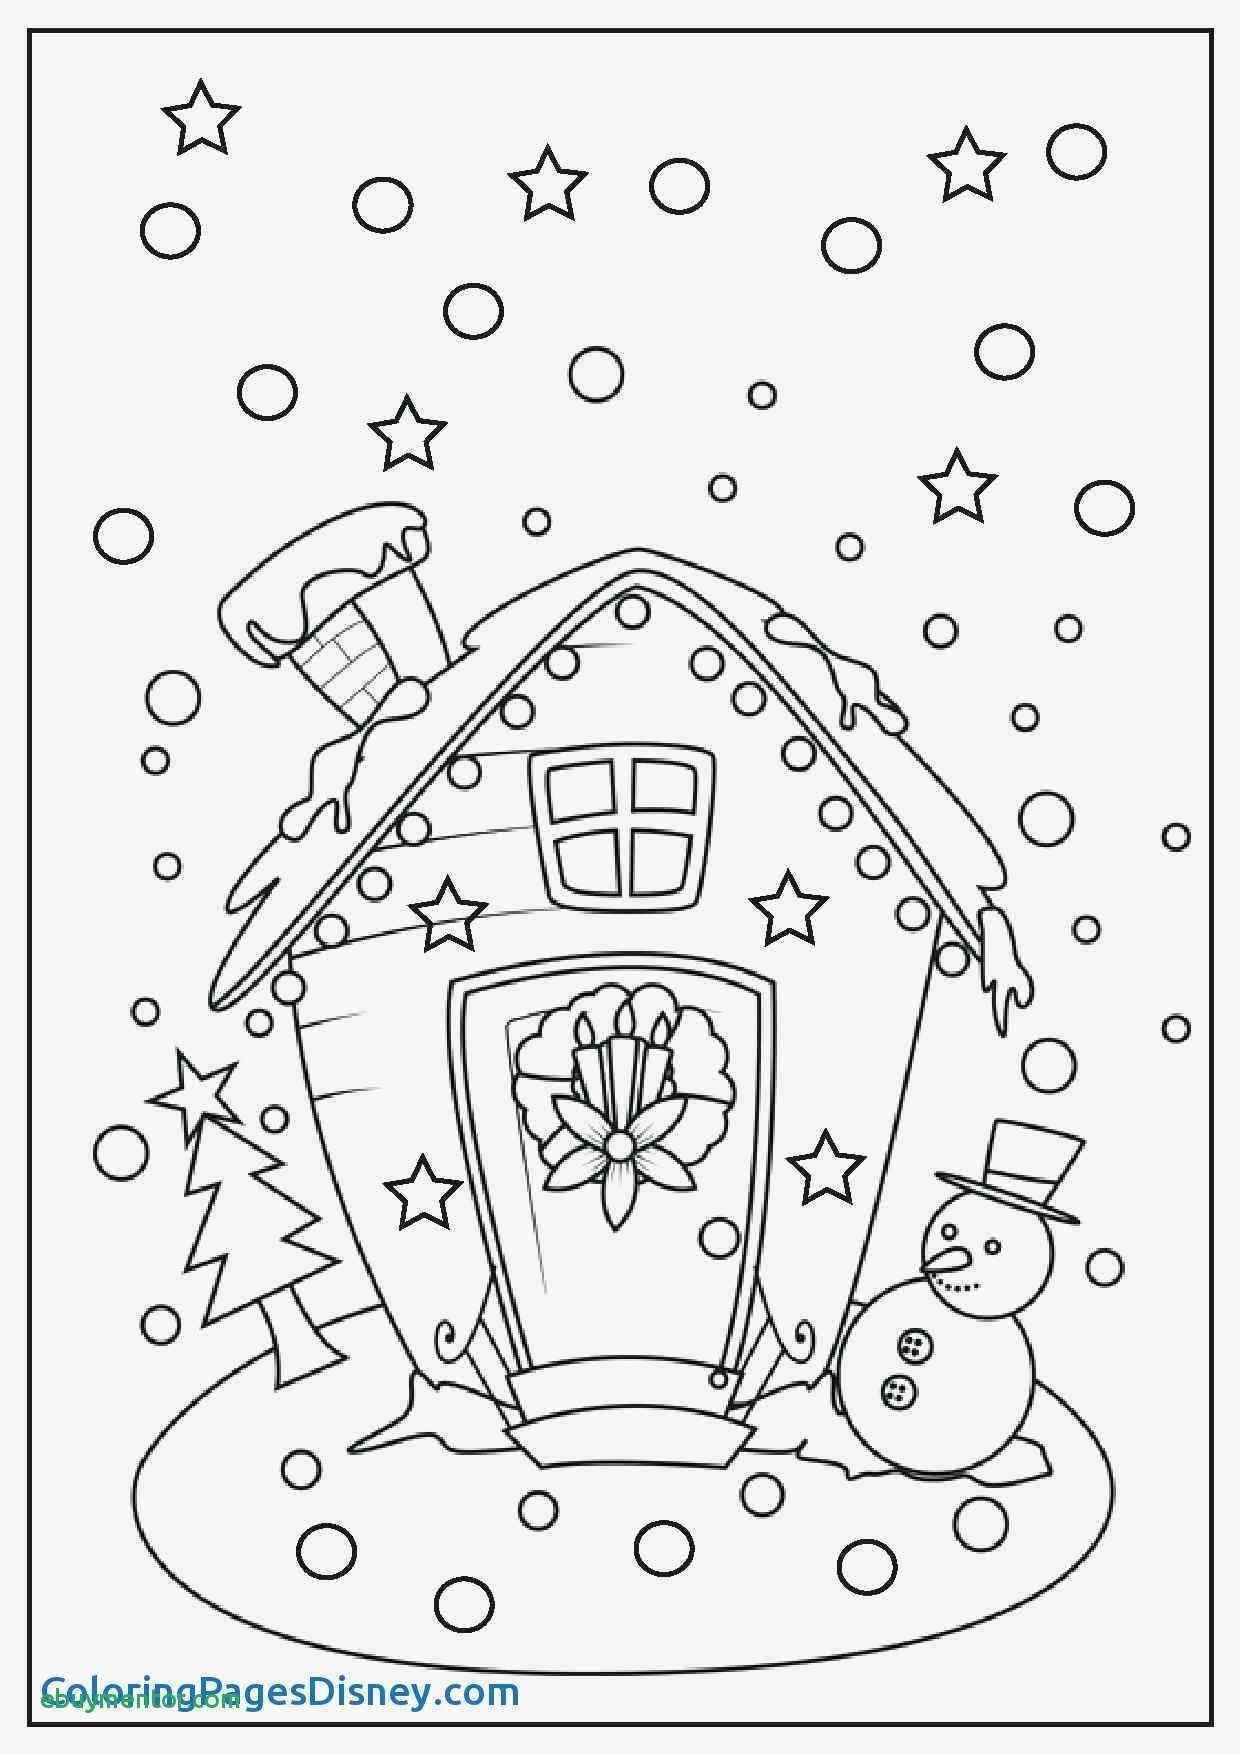 Solar Energy Coloring Pages  to Print 18o - Free For kids